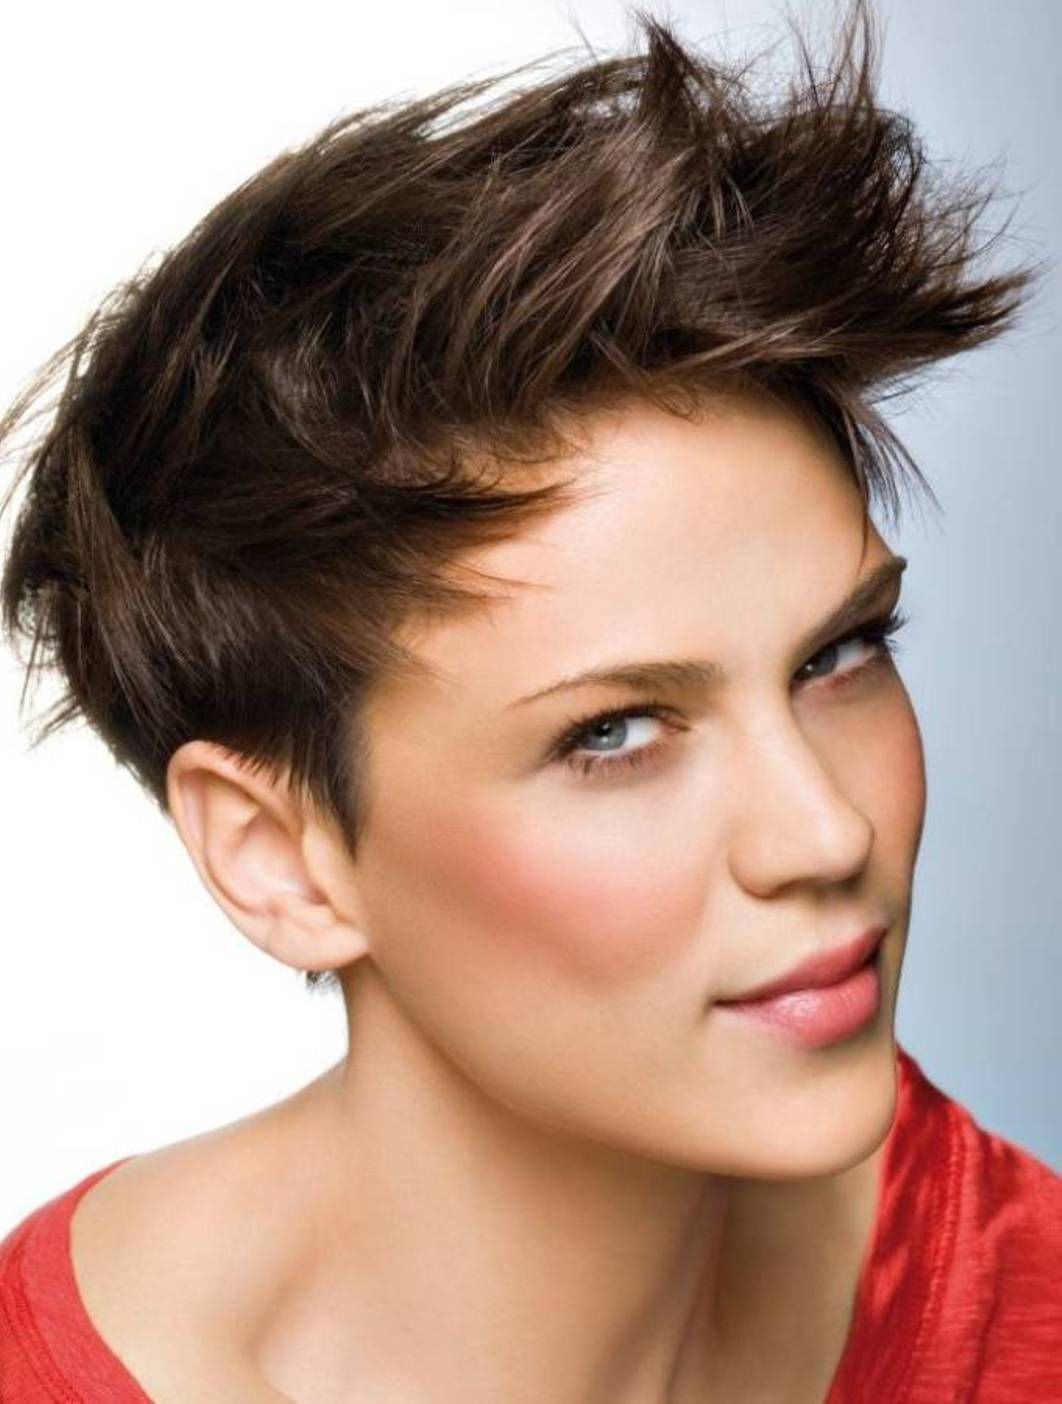 Spiky Extra Short Haircuts For Women Spiky Extra Short Haircuts